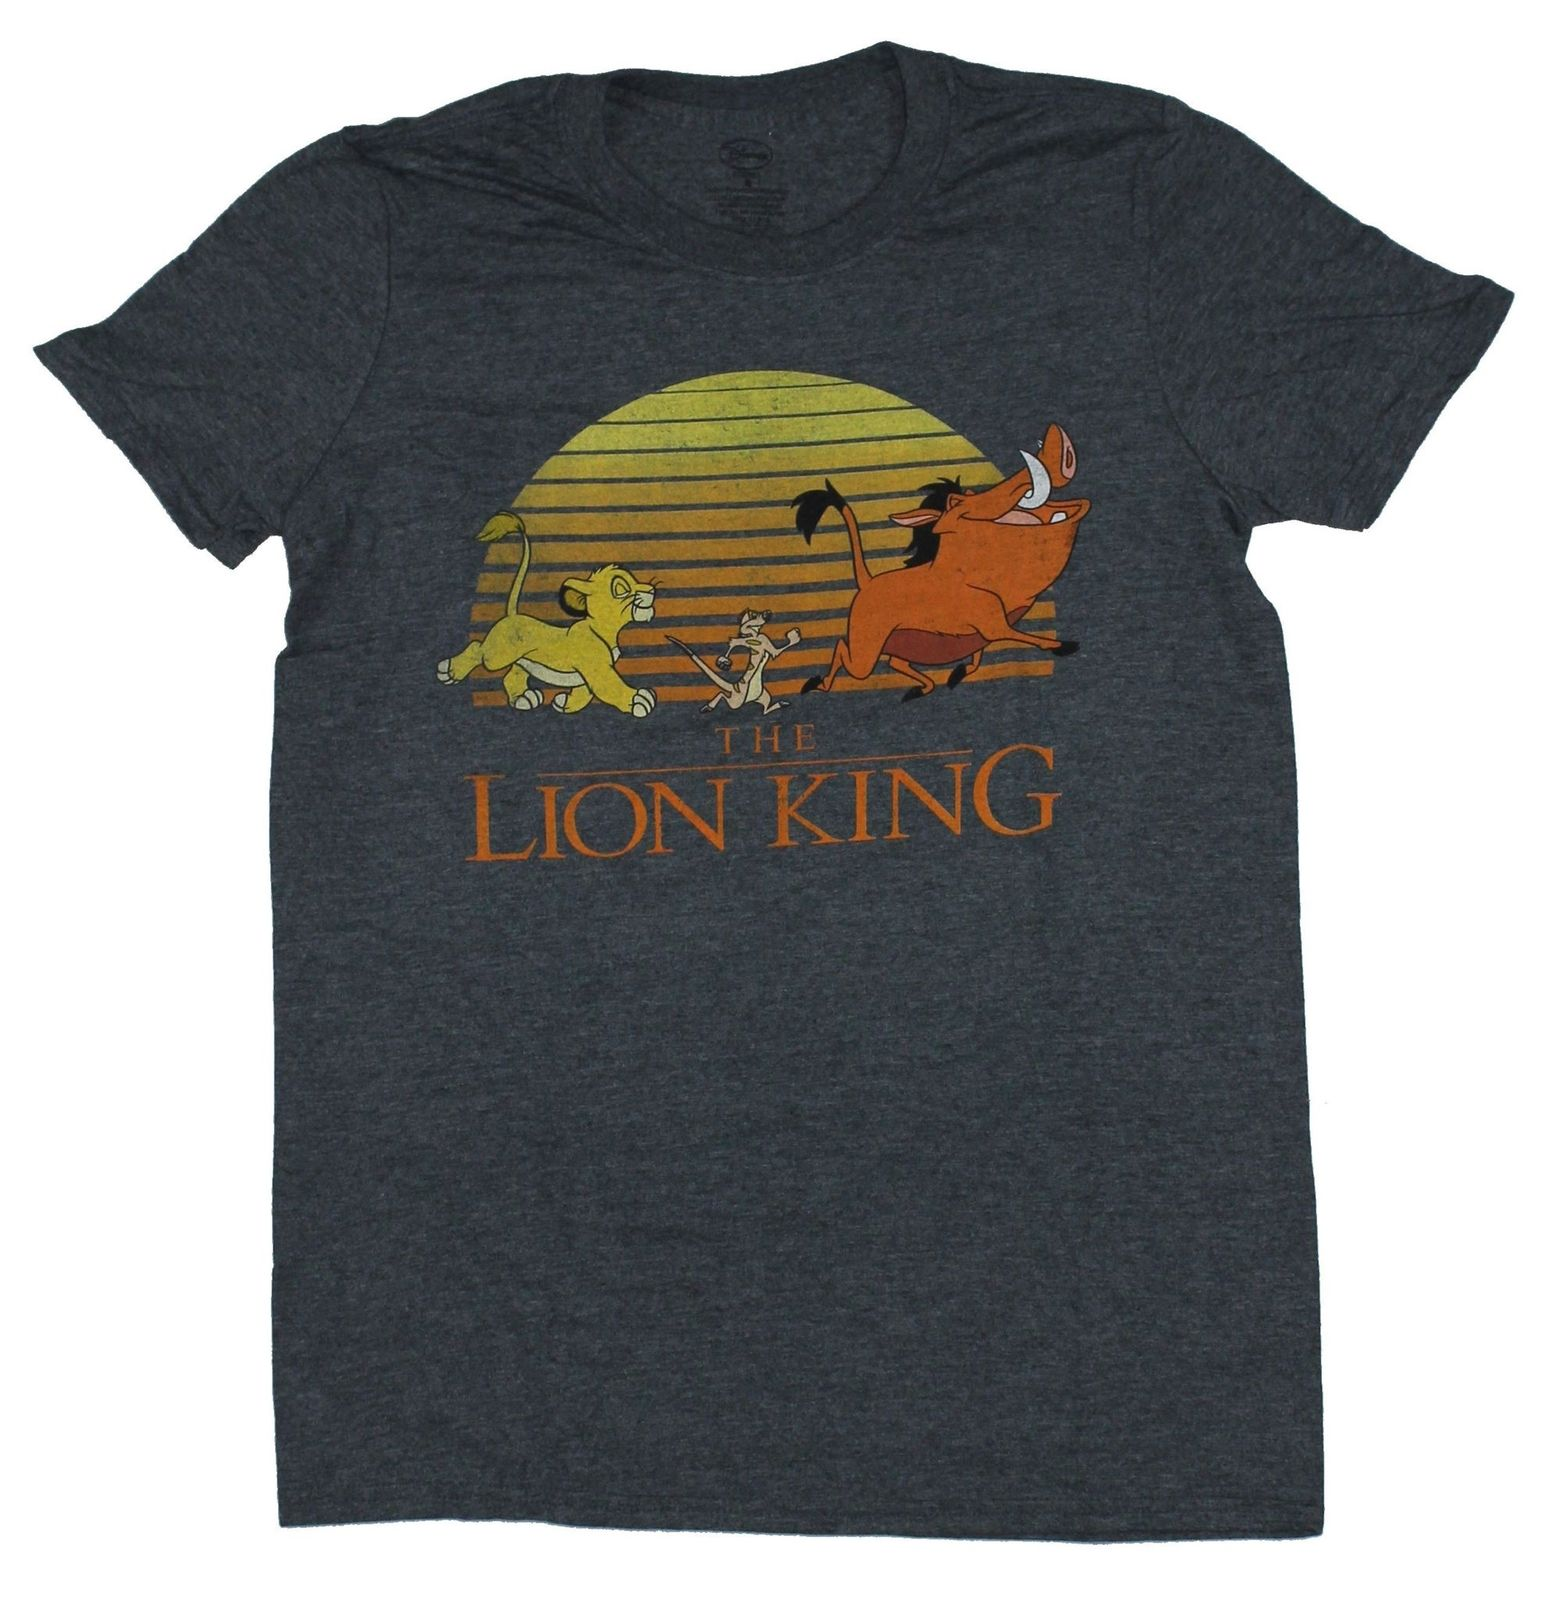 The Lion King Mens T-Shirt - Distressed Full Color Sunset March Cartoon t shirt men Unisex New Fashion tshirt free shipping